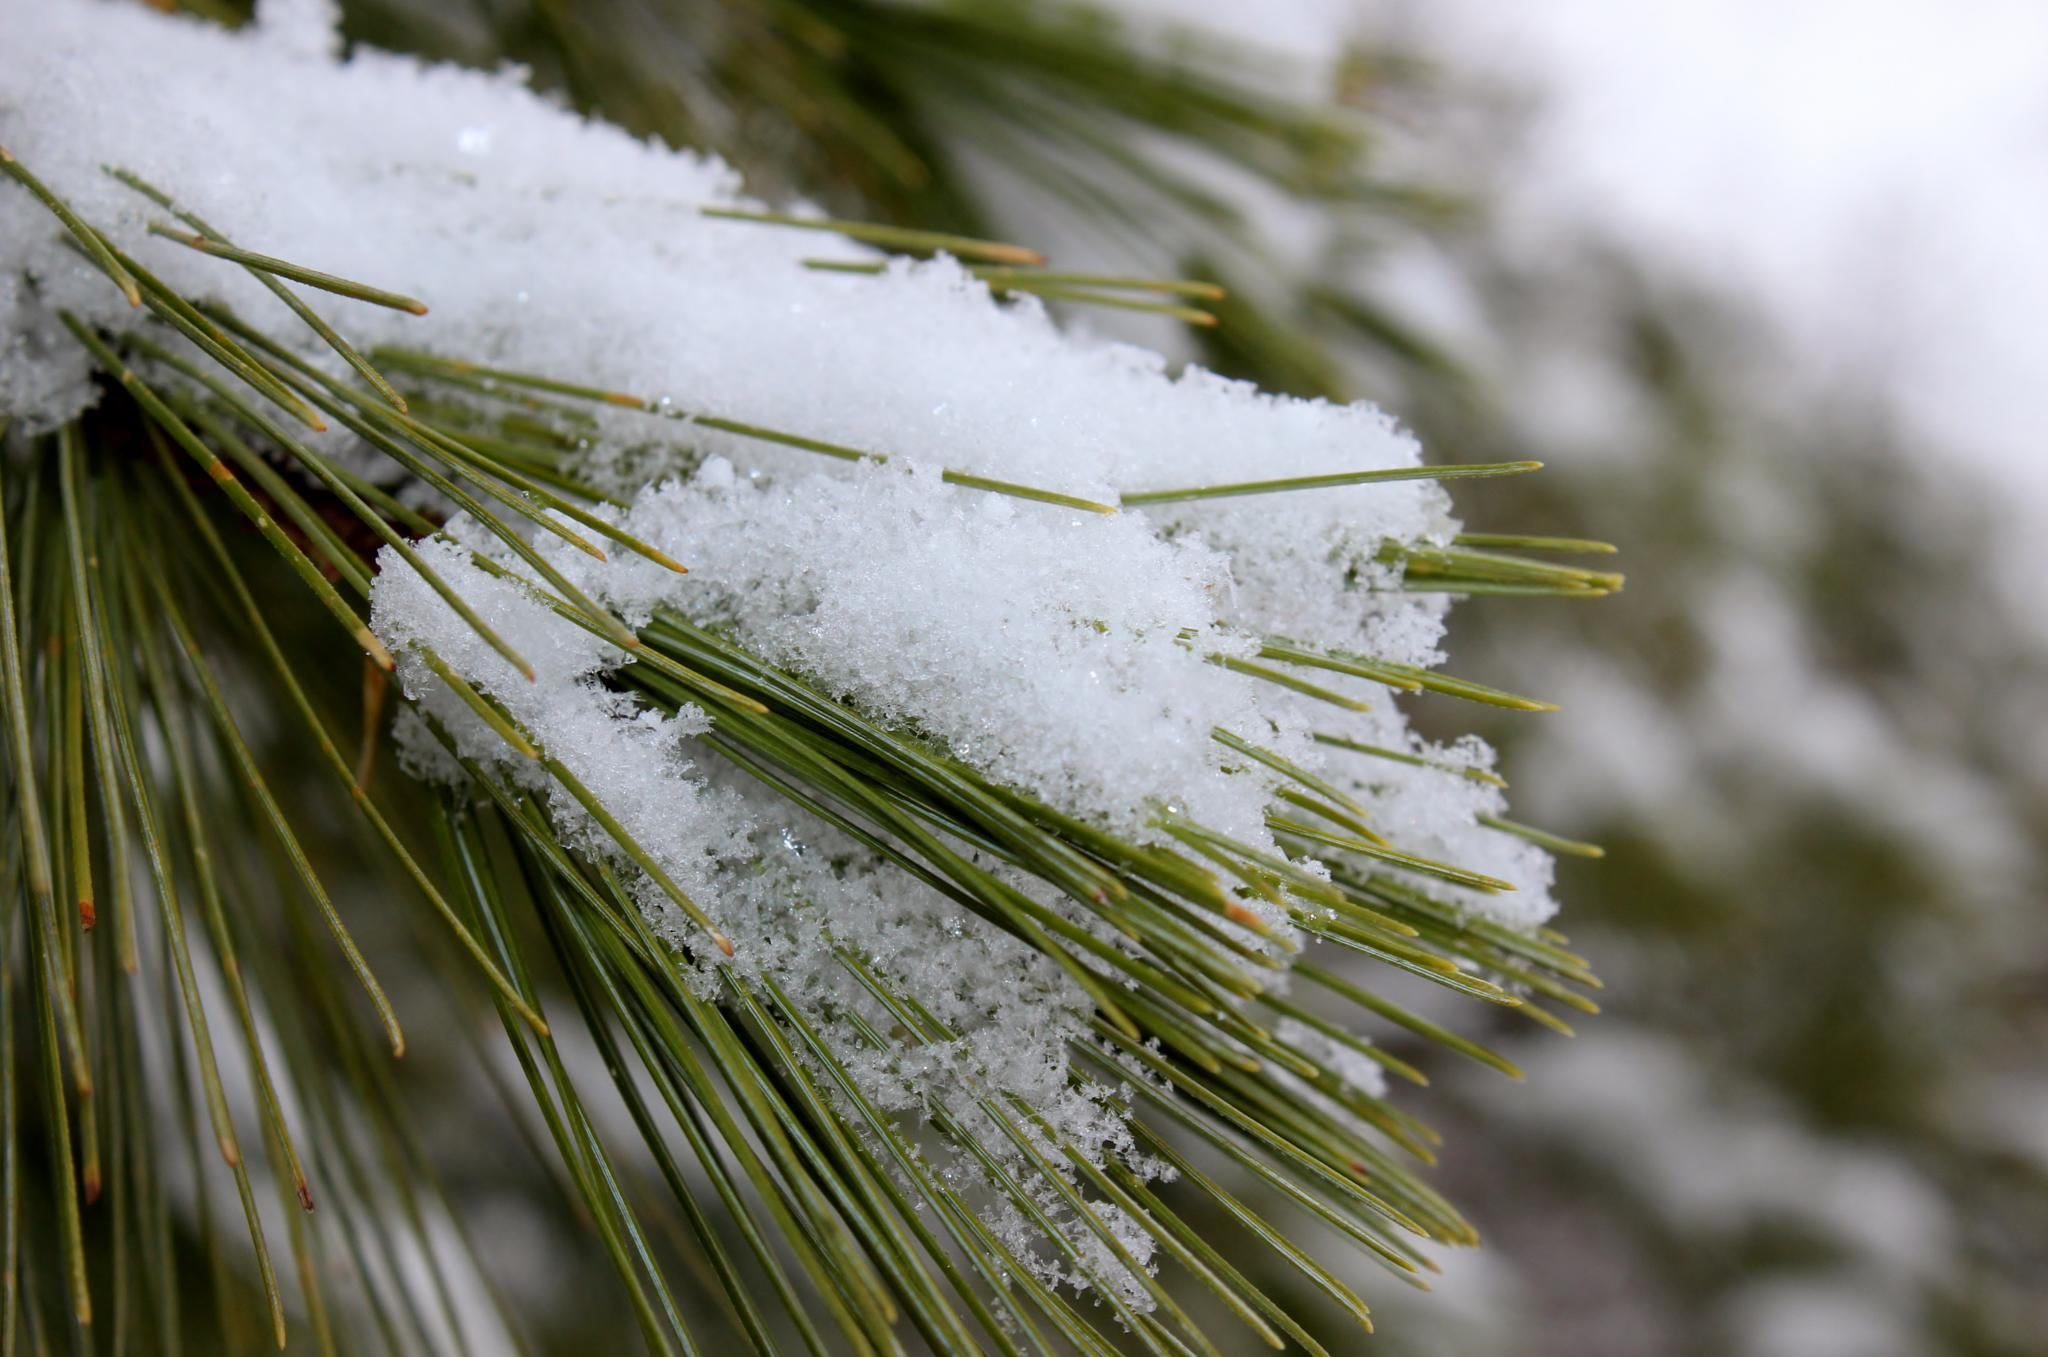 Fresh snow on the pine needles. by Angela Mead